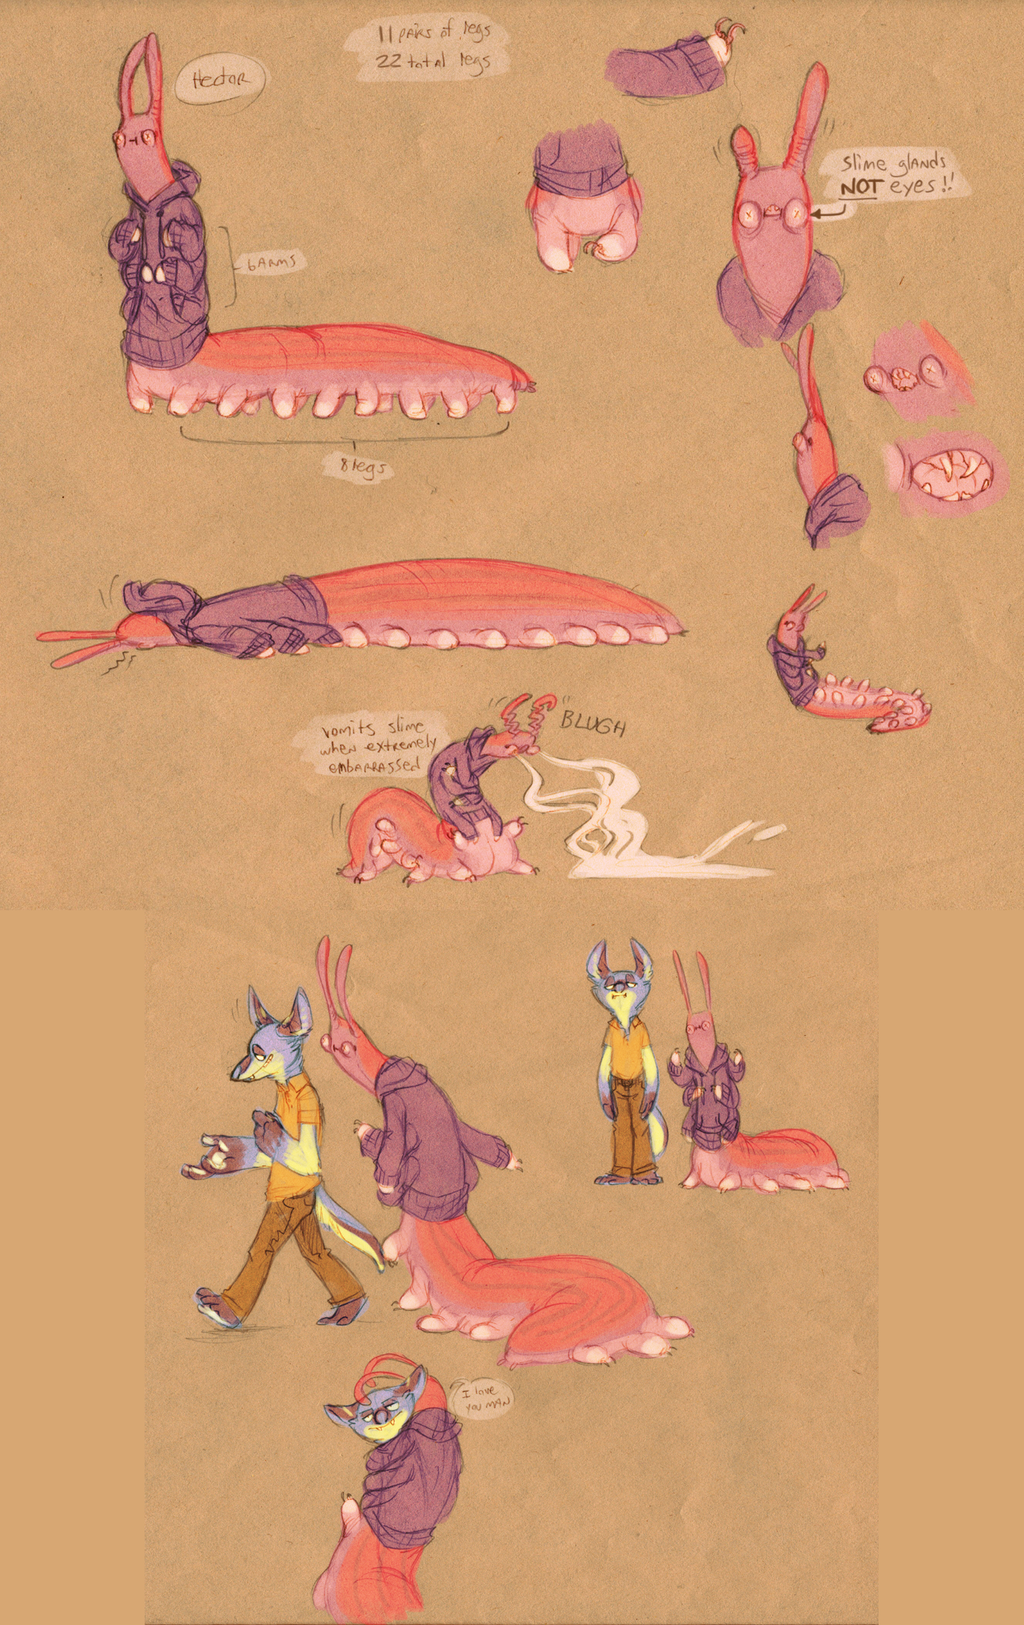 Velvet worms are my life now by VCR-WOLFE